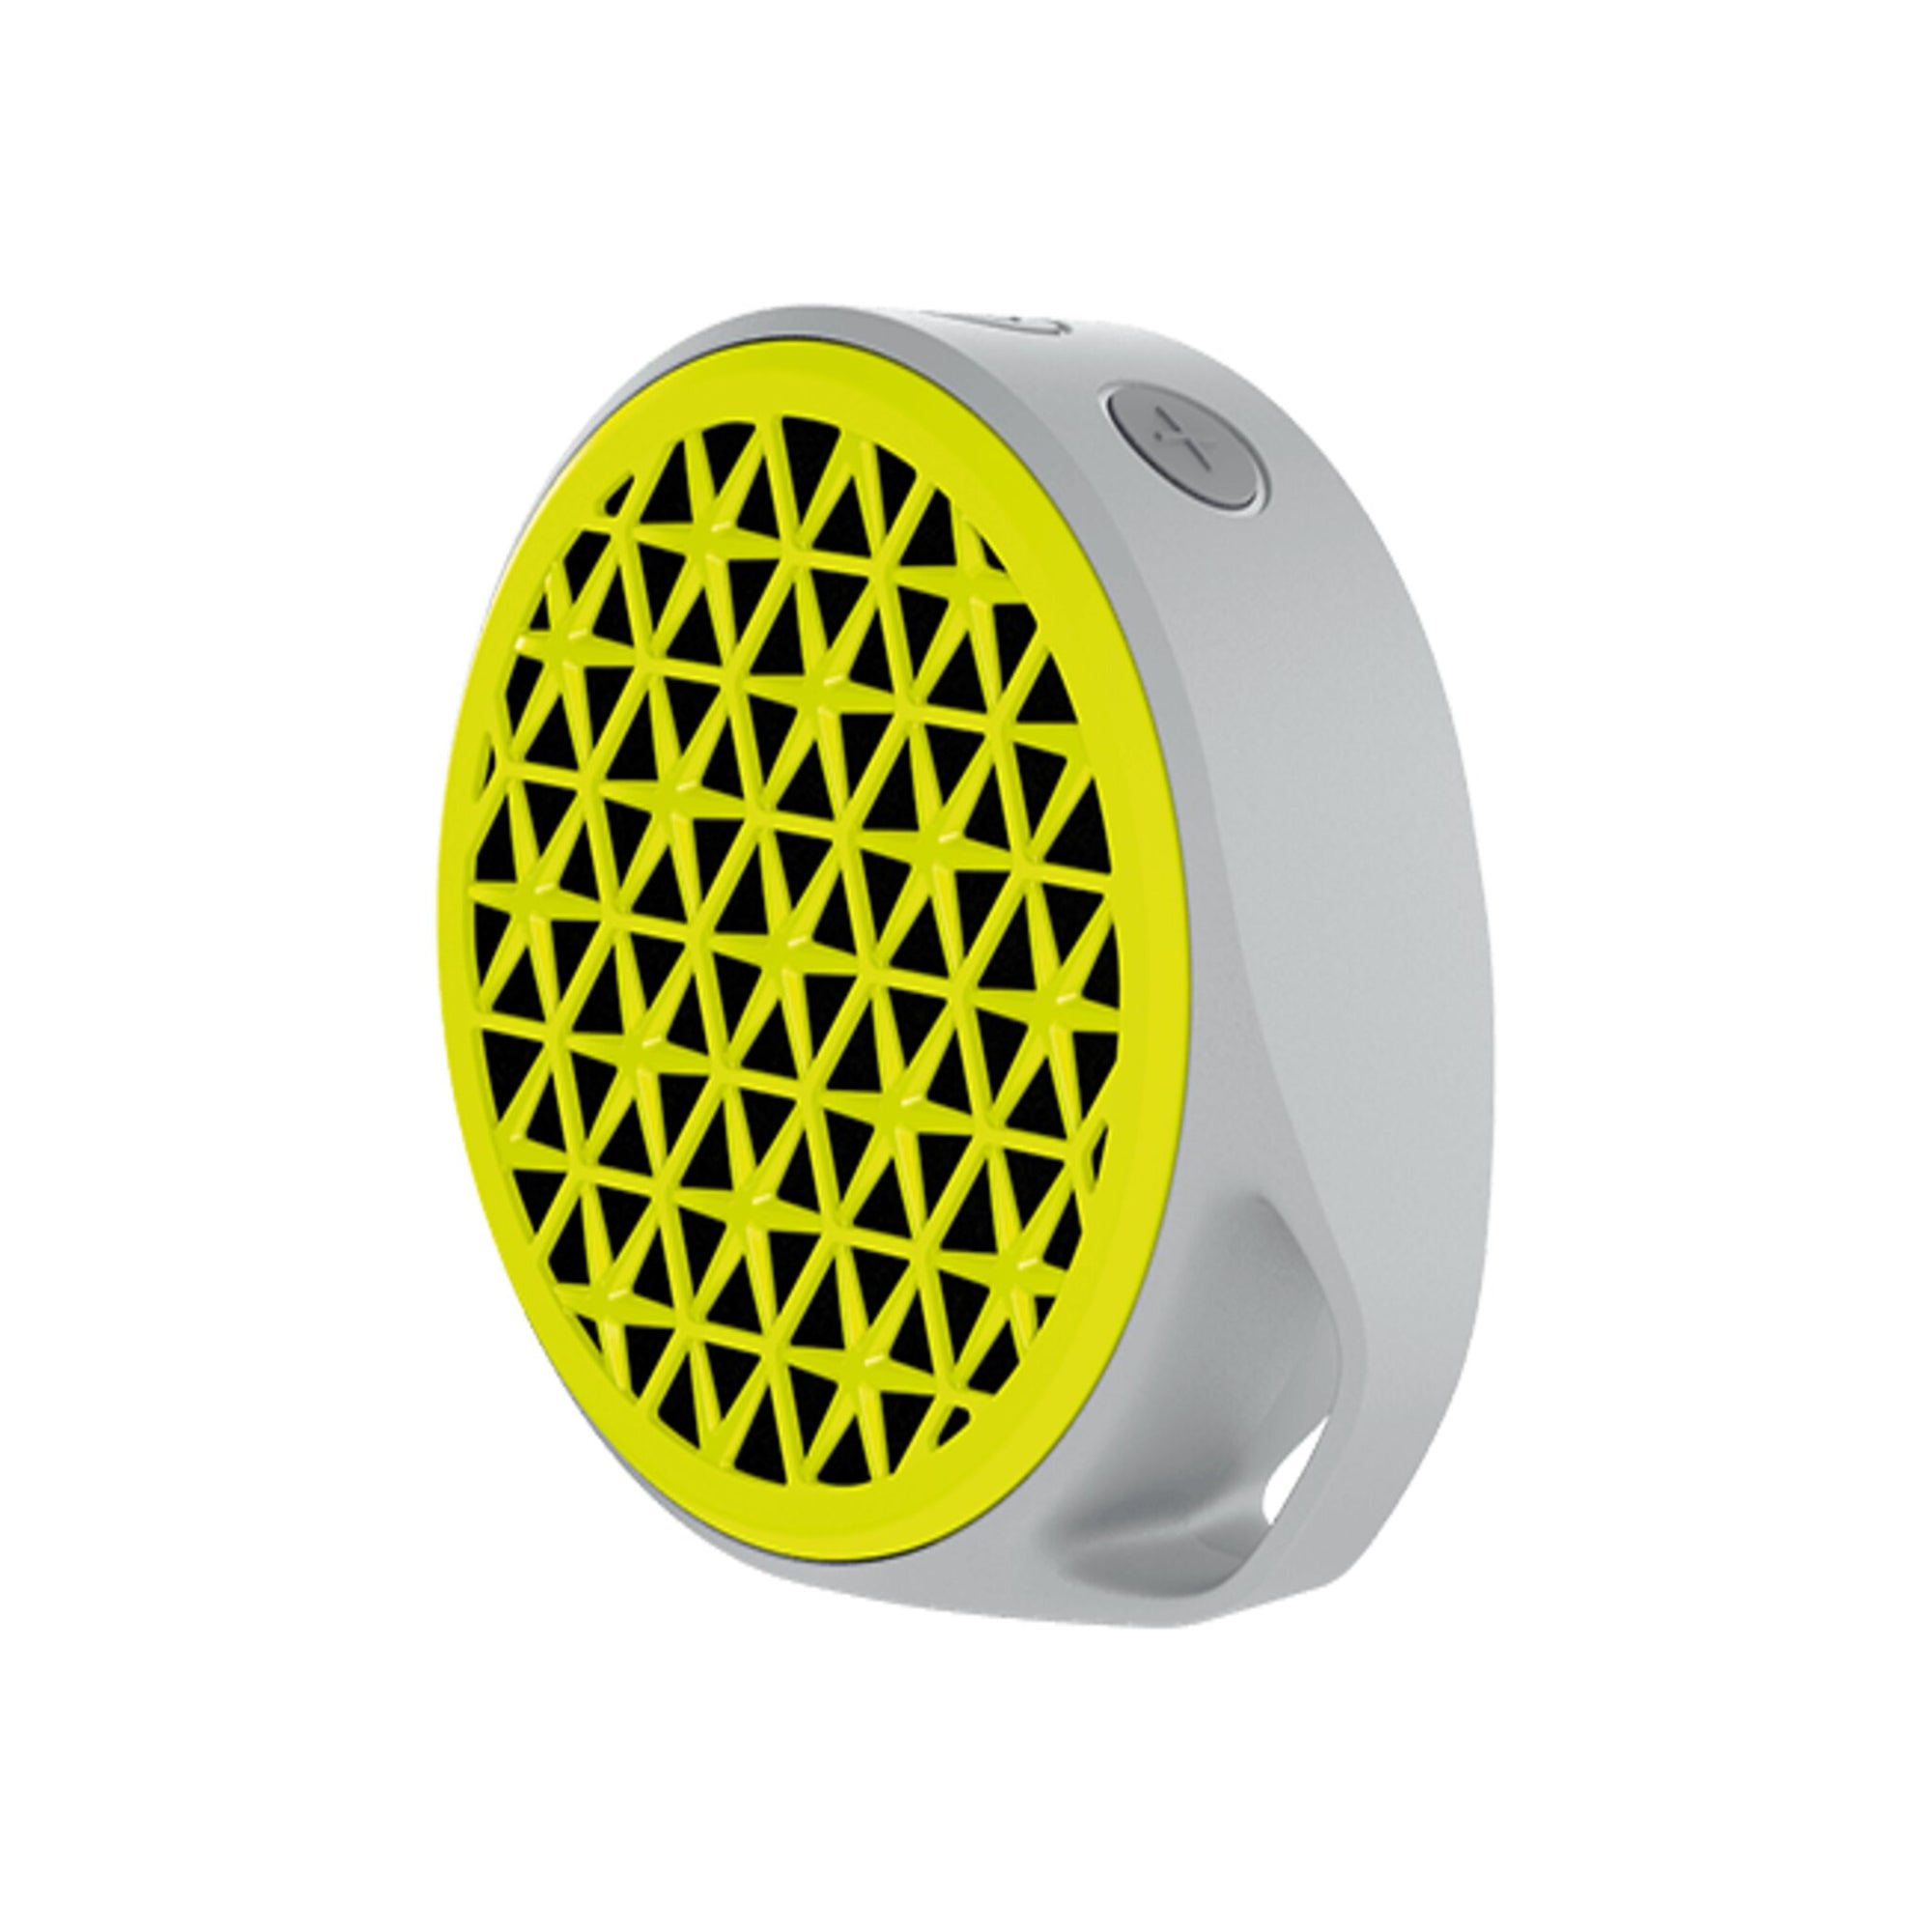 Logitech Speaker Mobile Boombox X50 Yellow - Gears For Ears